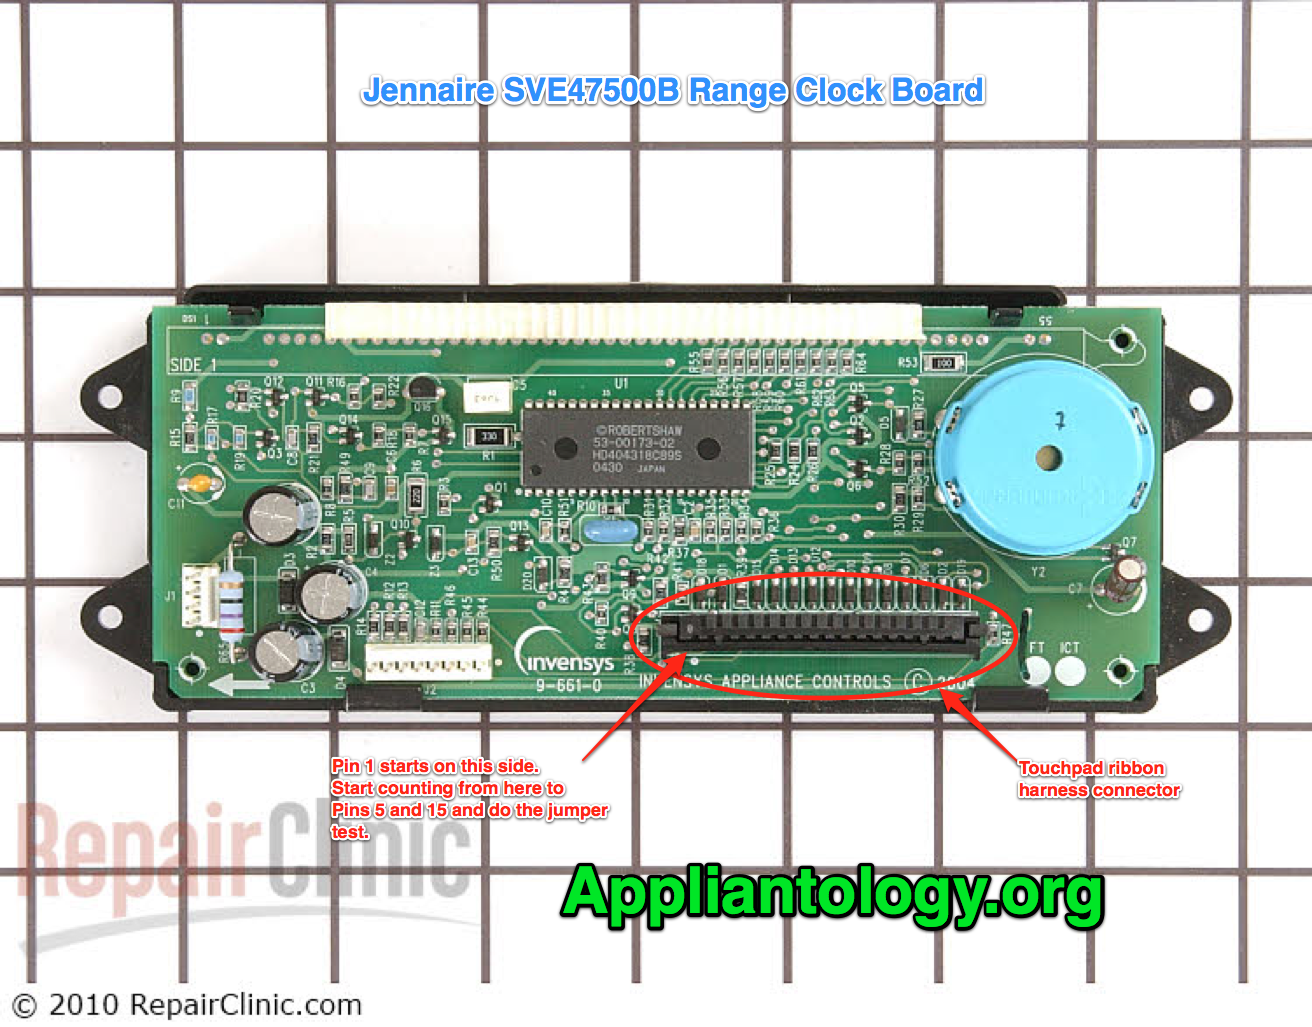 Jenn-Air SVE47500B range clock board esoteric repair kata